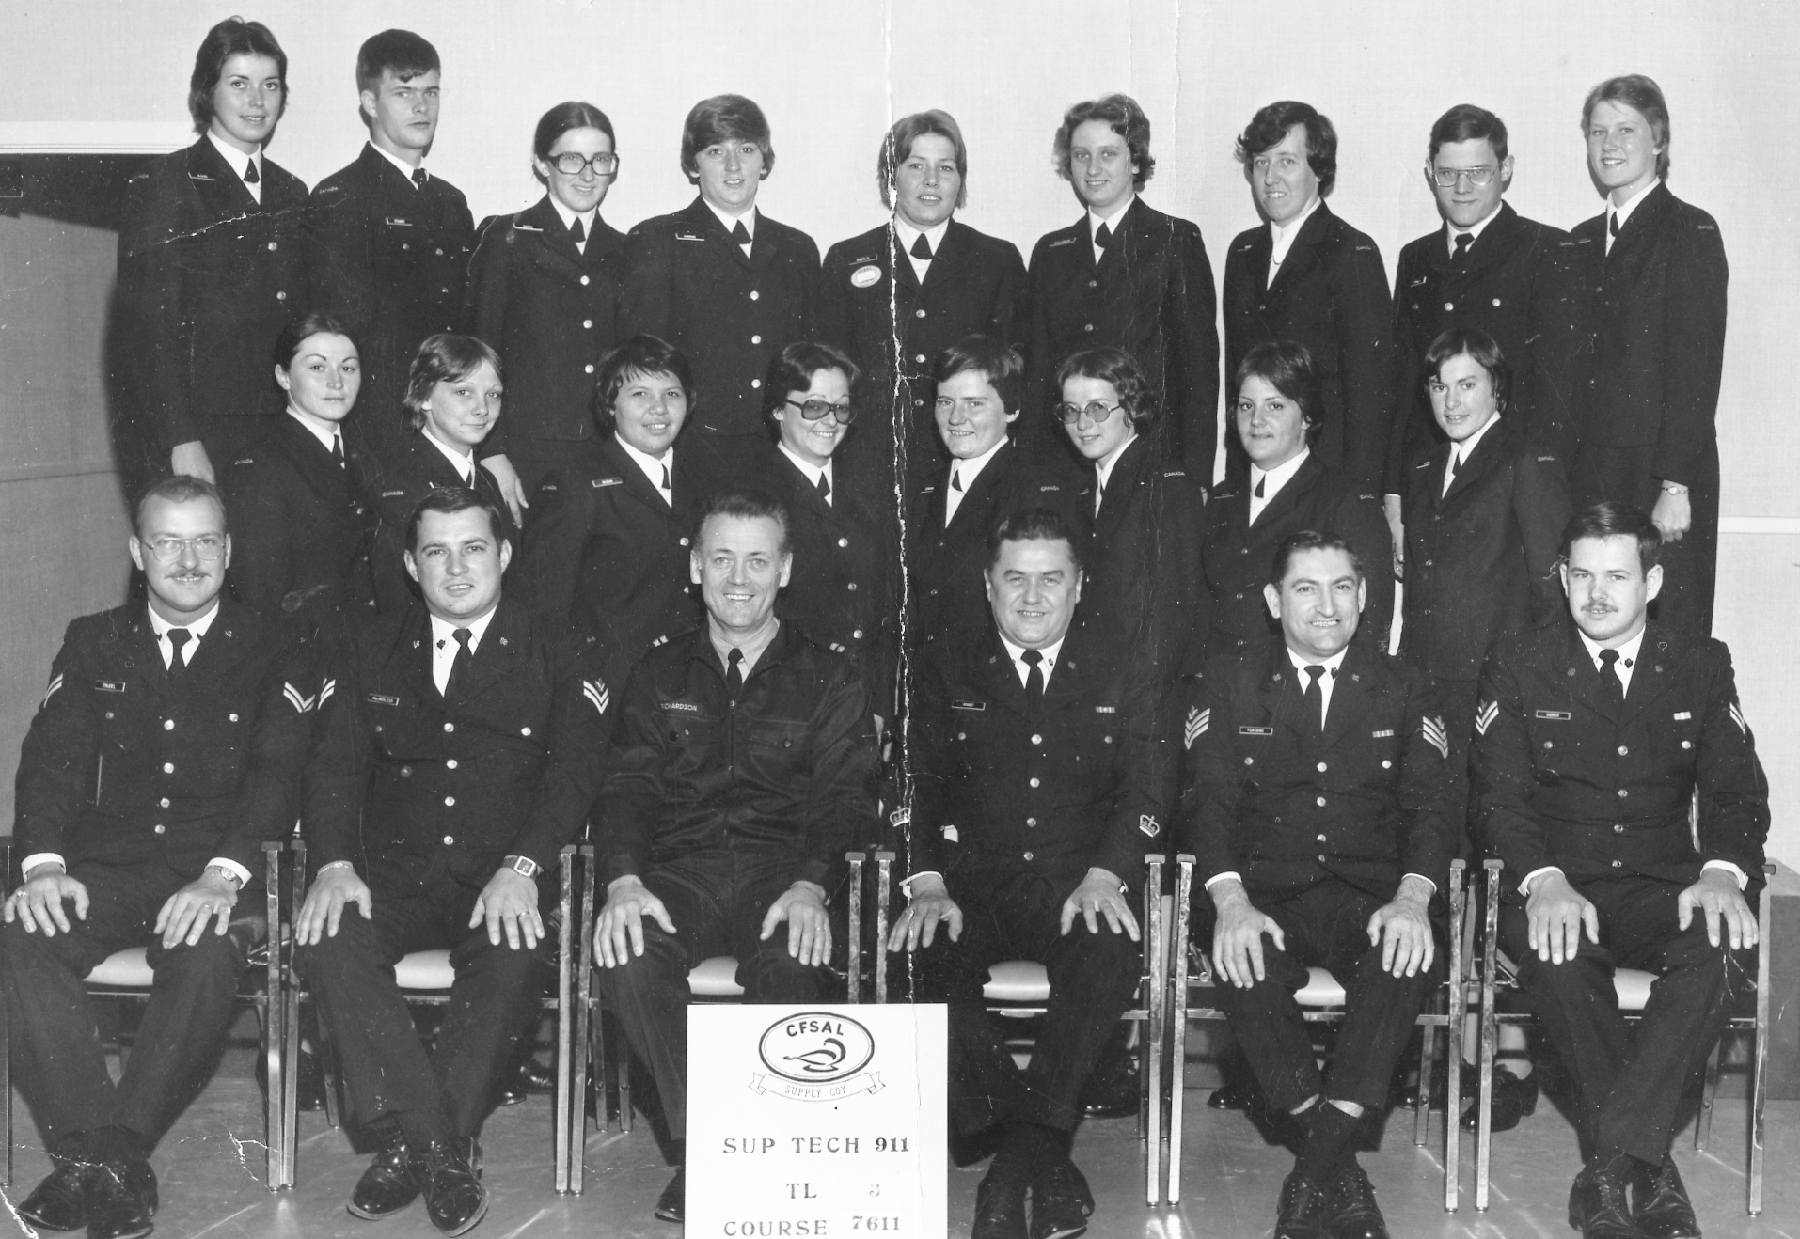 Private Cathy Coombs (top row, third from the left) with members of her supply technician course at Borden, Ontario, in May 1976. PHOTO: Submitted